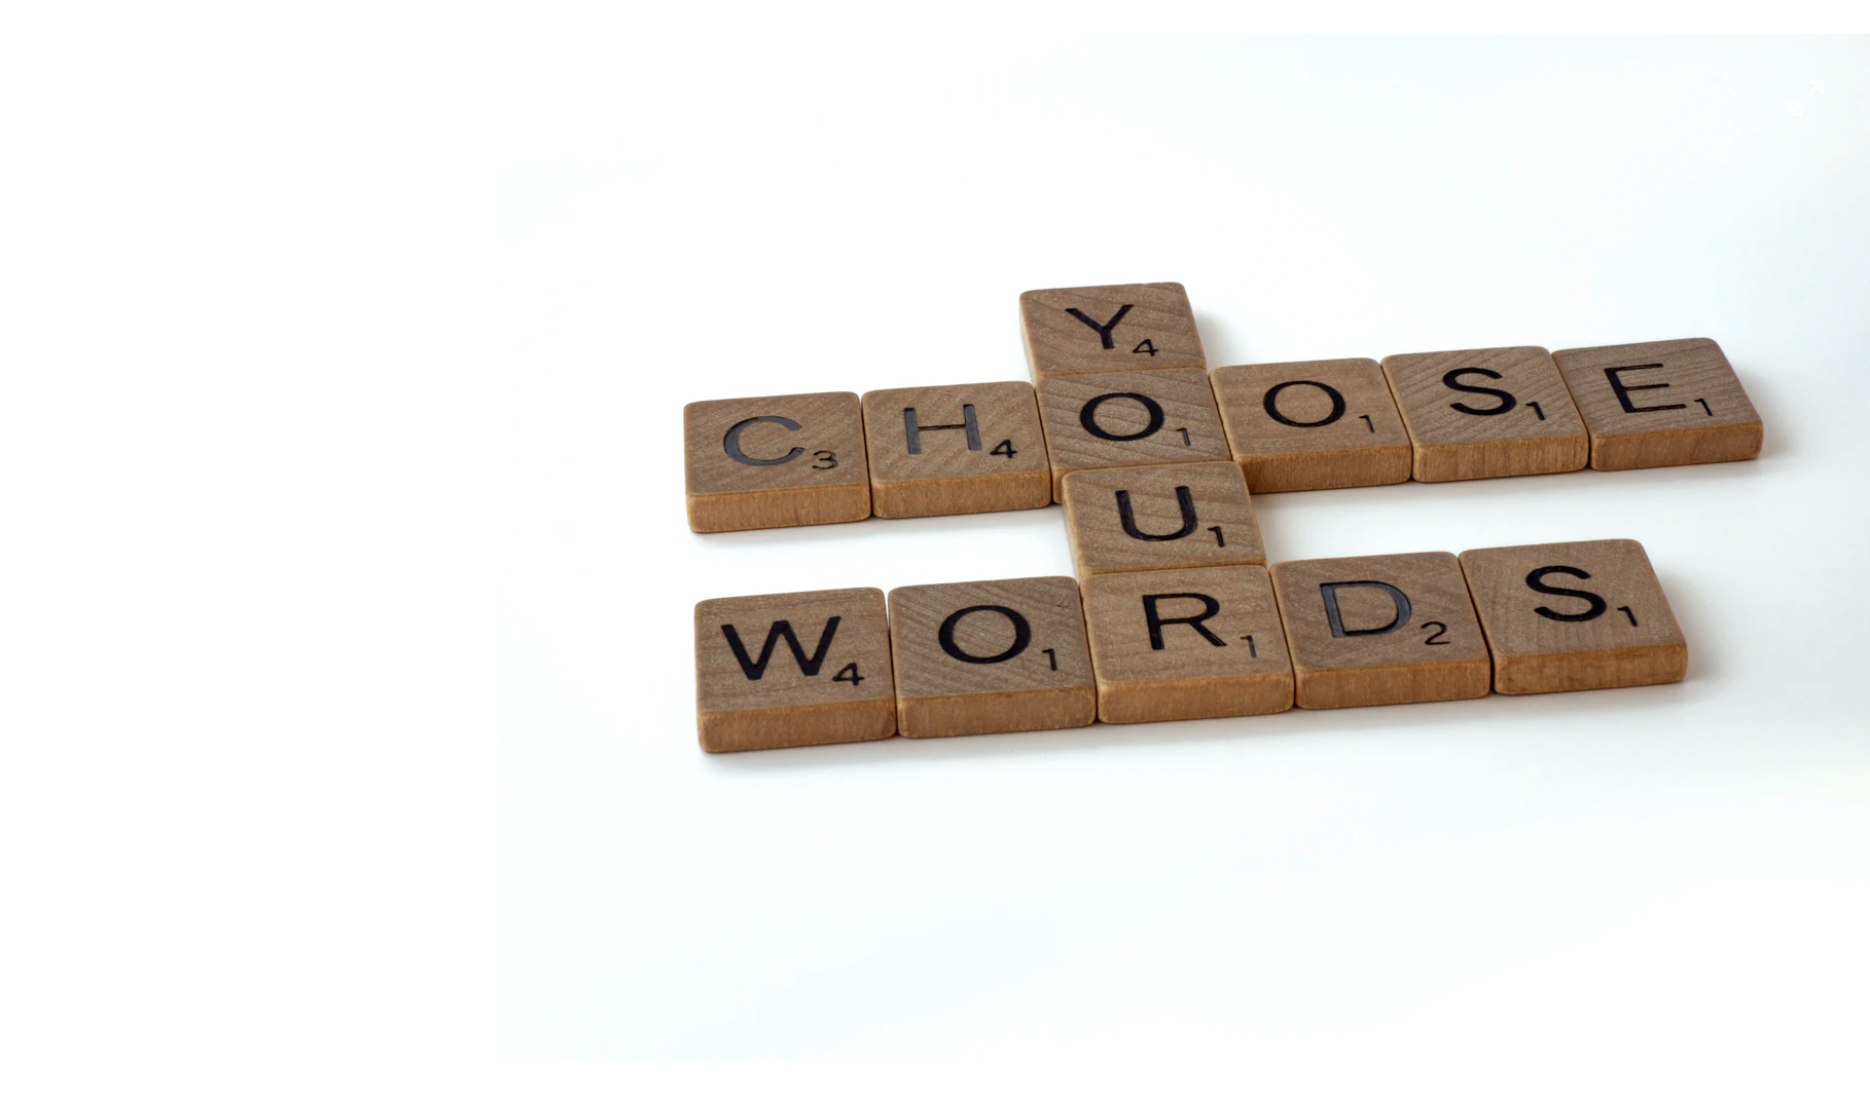 """Image of scrabble tiles arranged to say """"Choose Your Words"""""""